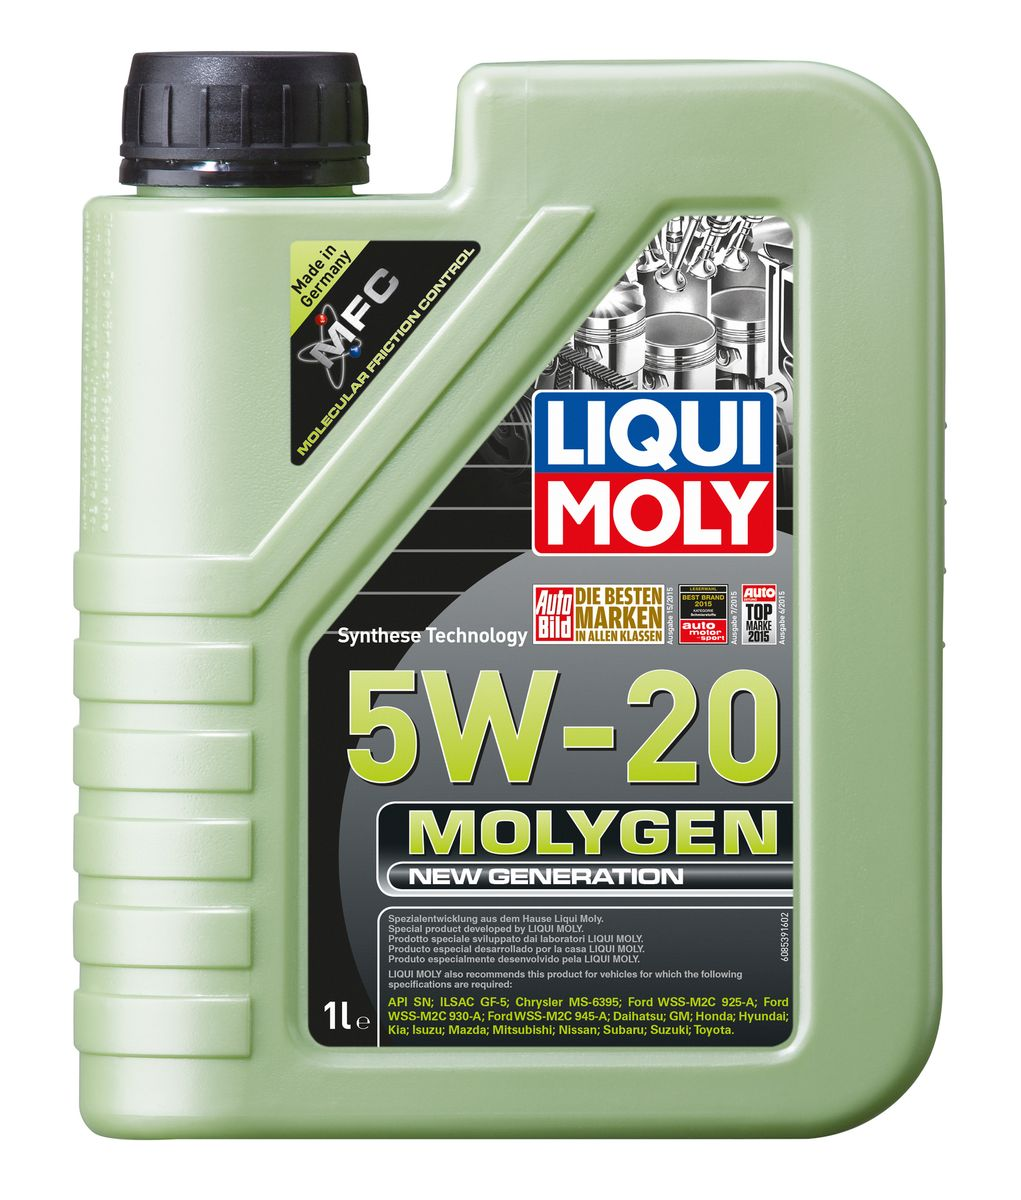 Масло моторное Liqui Moly Molygen New Generation, НС-синтетическое, 5W-20, 1 л hee grand 2017 spring summer men jeans full length business style slim fitted straight denim trousers plus size 29 40 mkn960